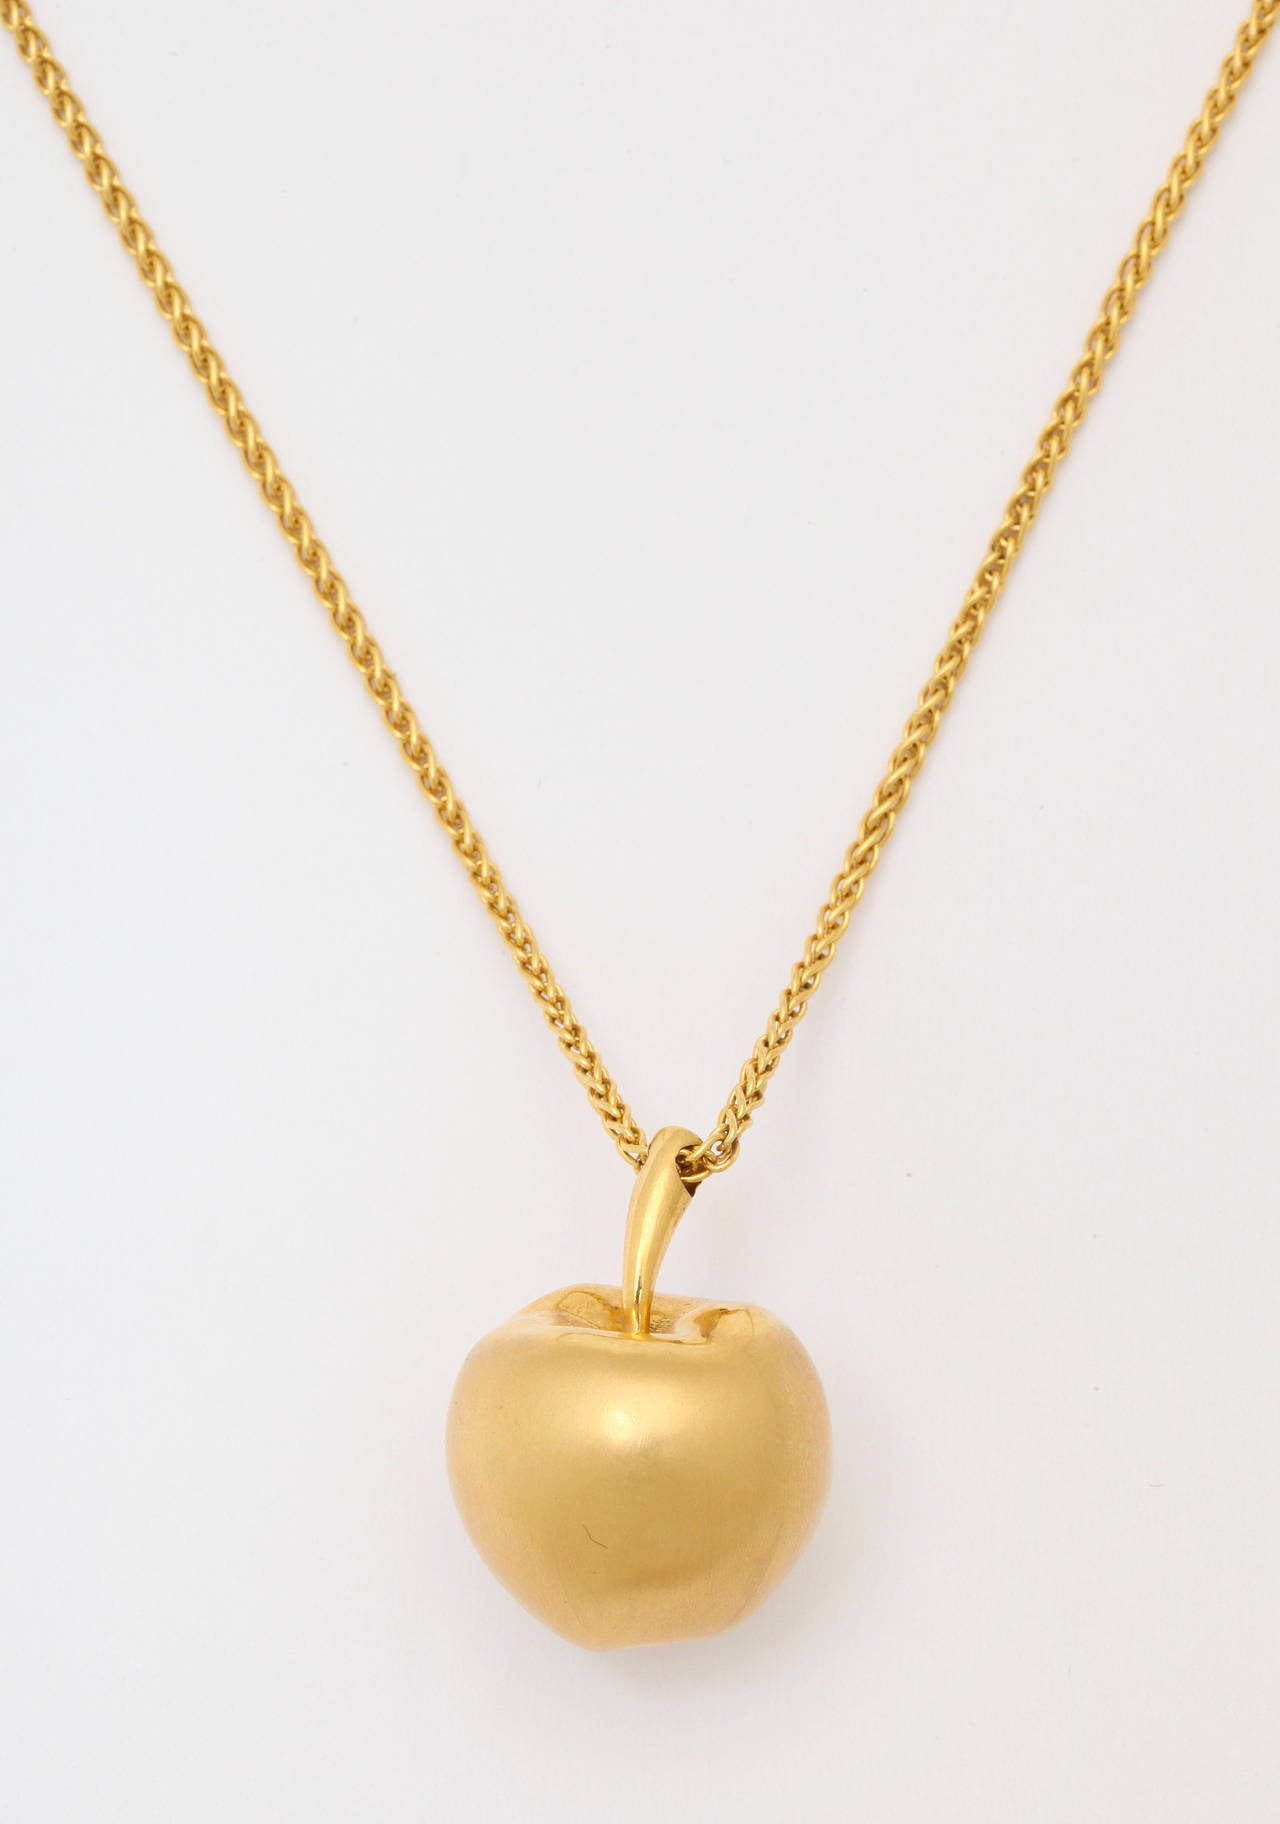 Long Gold Chain With Apple Pendant 2